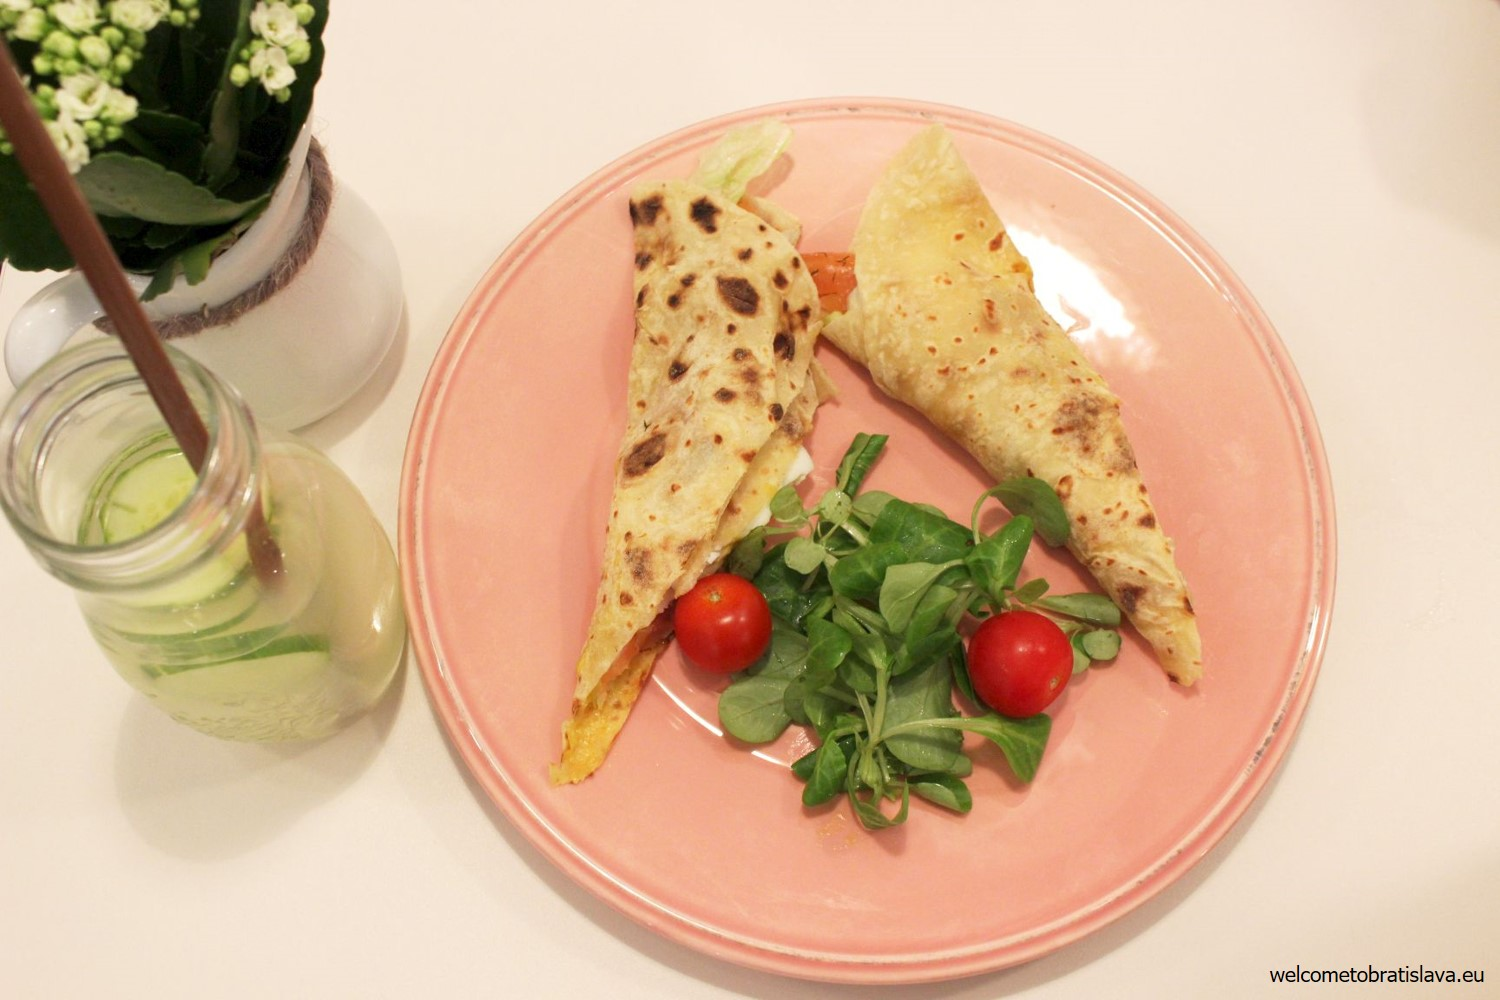 Piadina (salty potato dough pancake) with marinated salmon